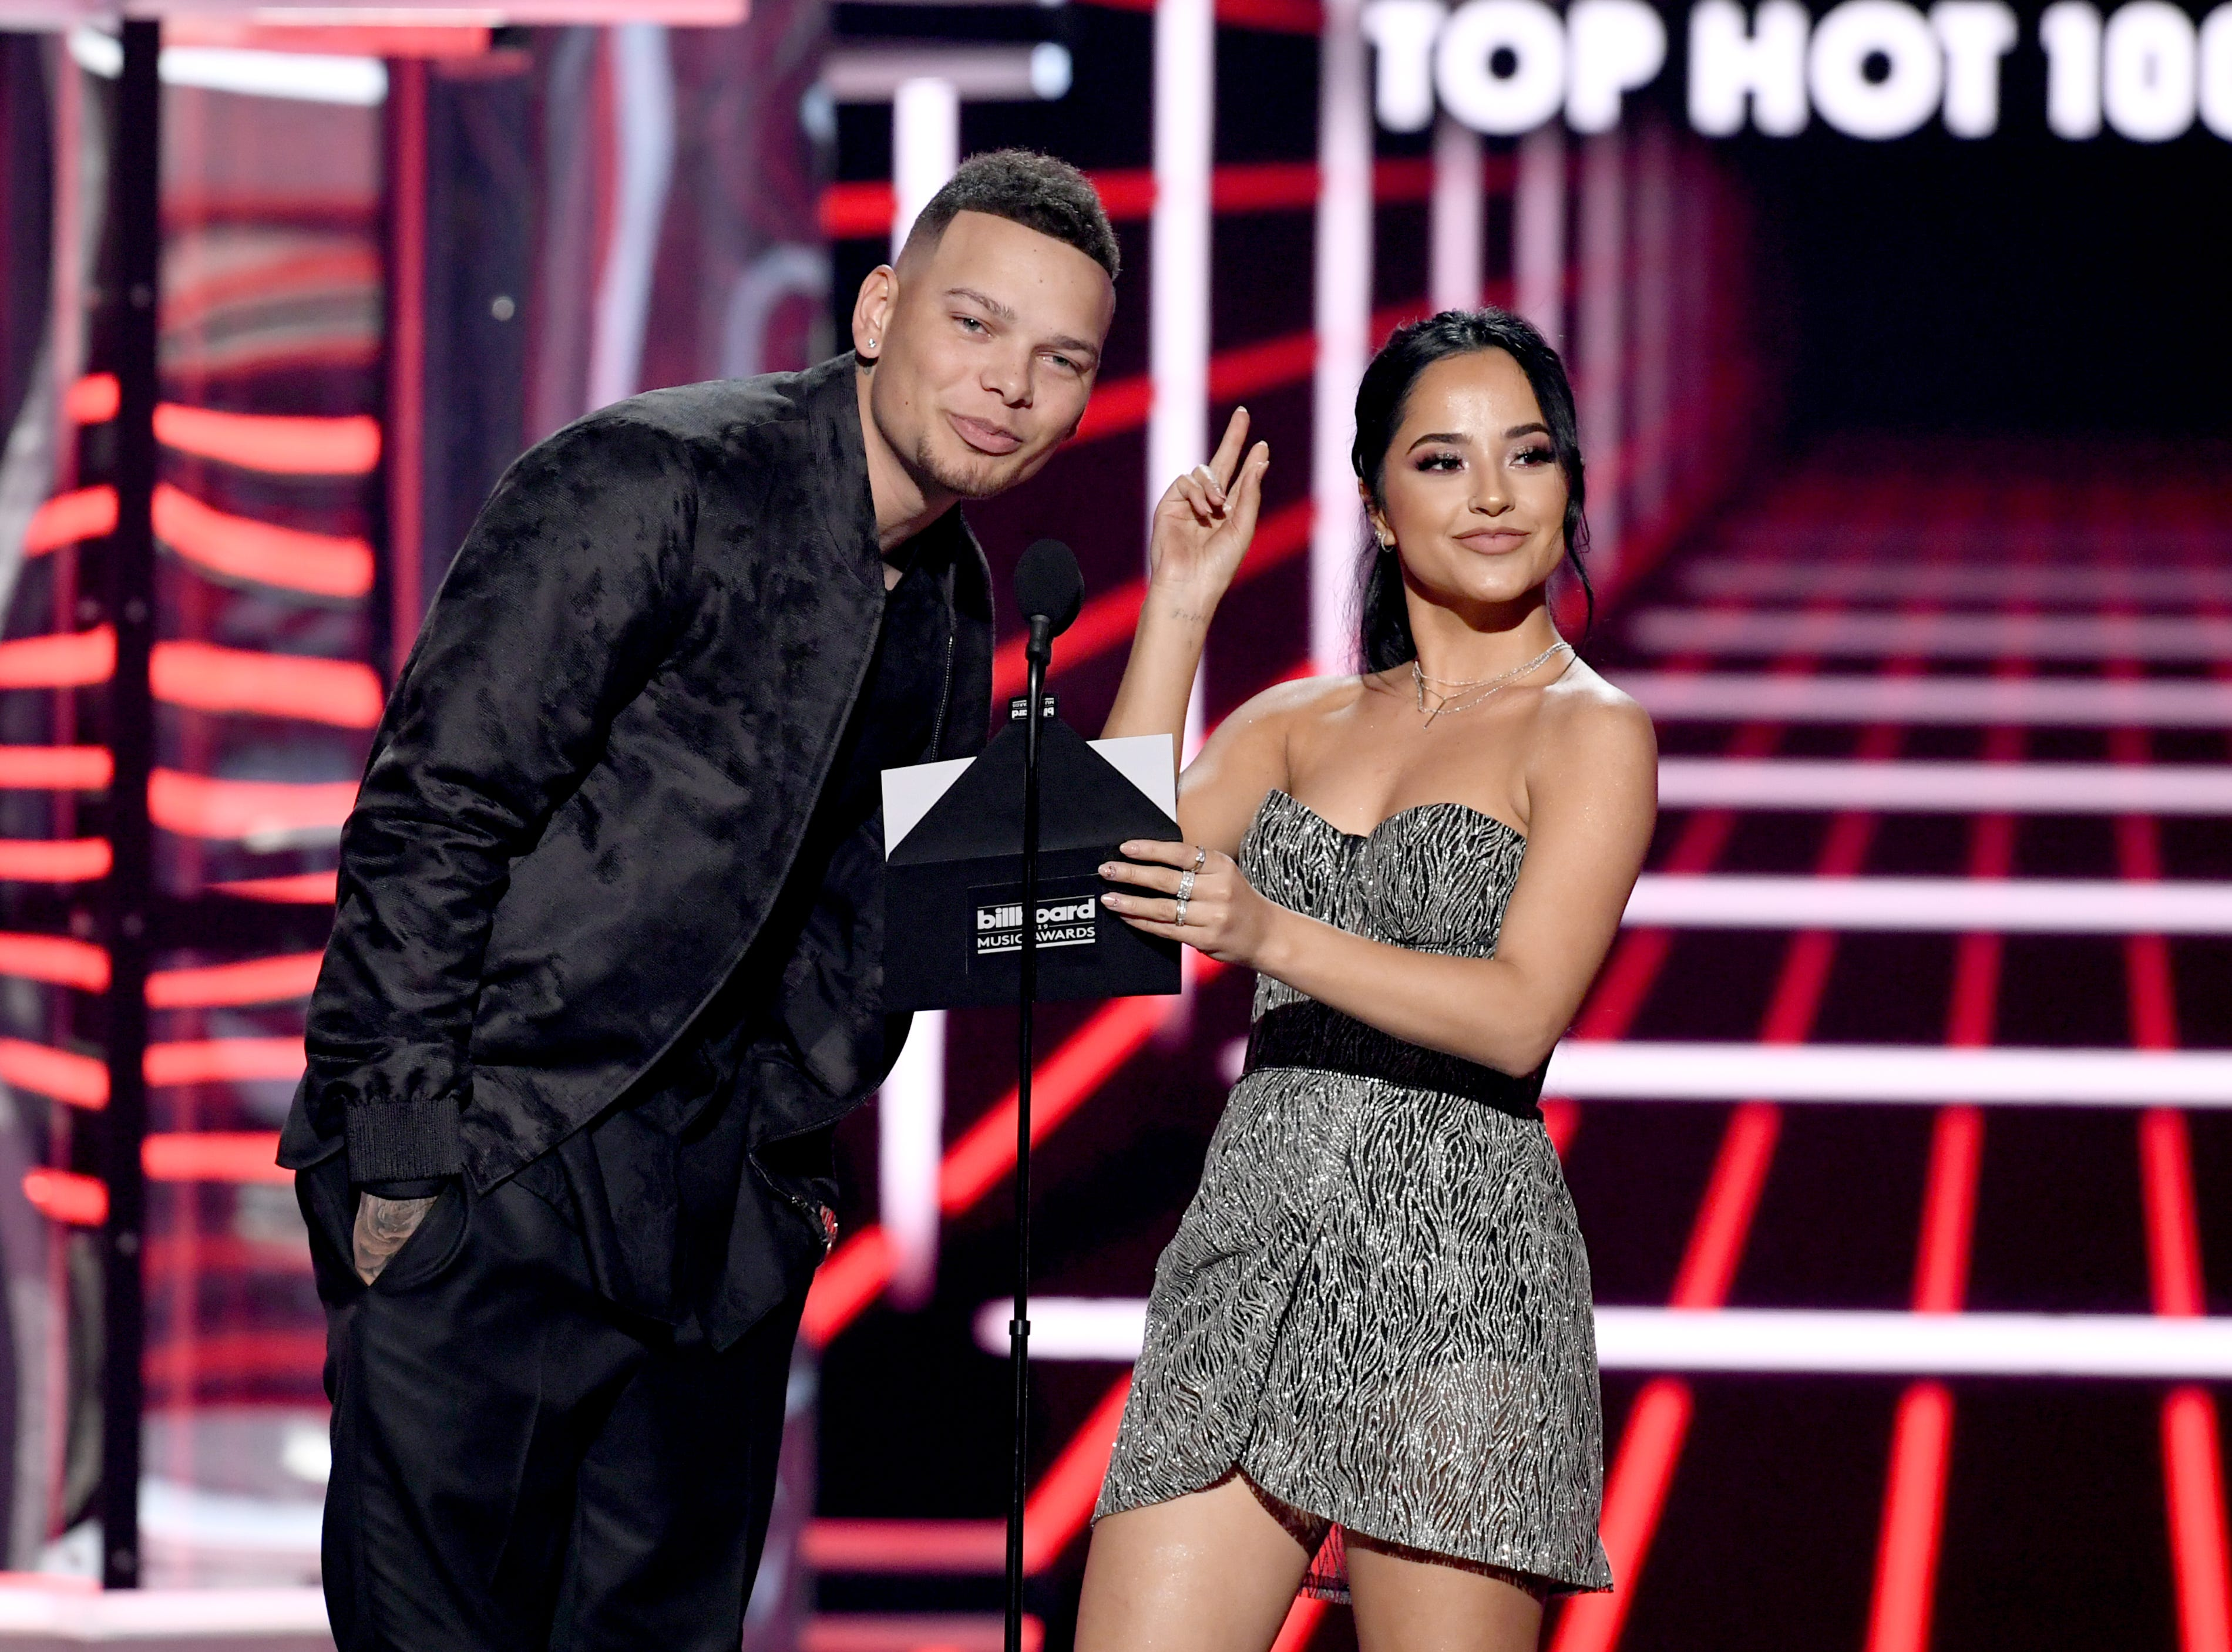 (L-R) Kane Brown and Becky G speak onstage during the 2019 Billboard Music Awards at MGM Grand Garden Arena on May 01, 2019 in Las Vegas, Nevada.